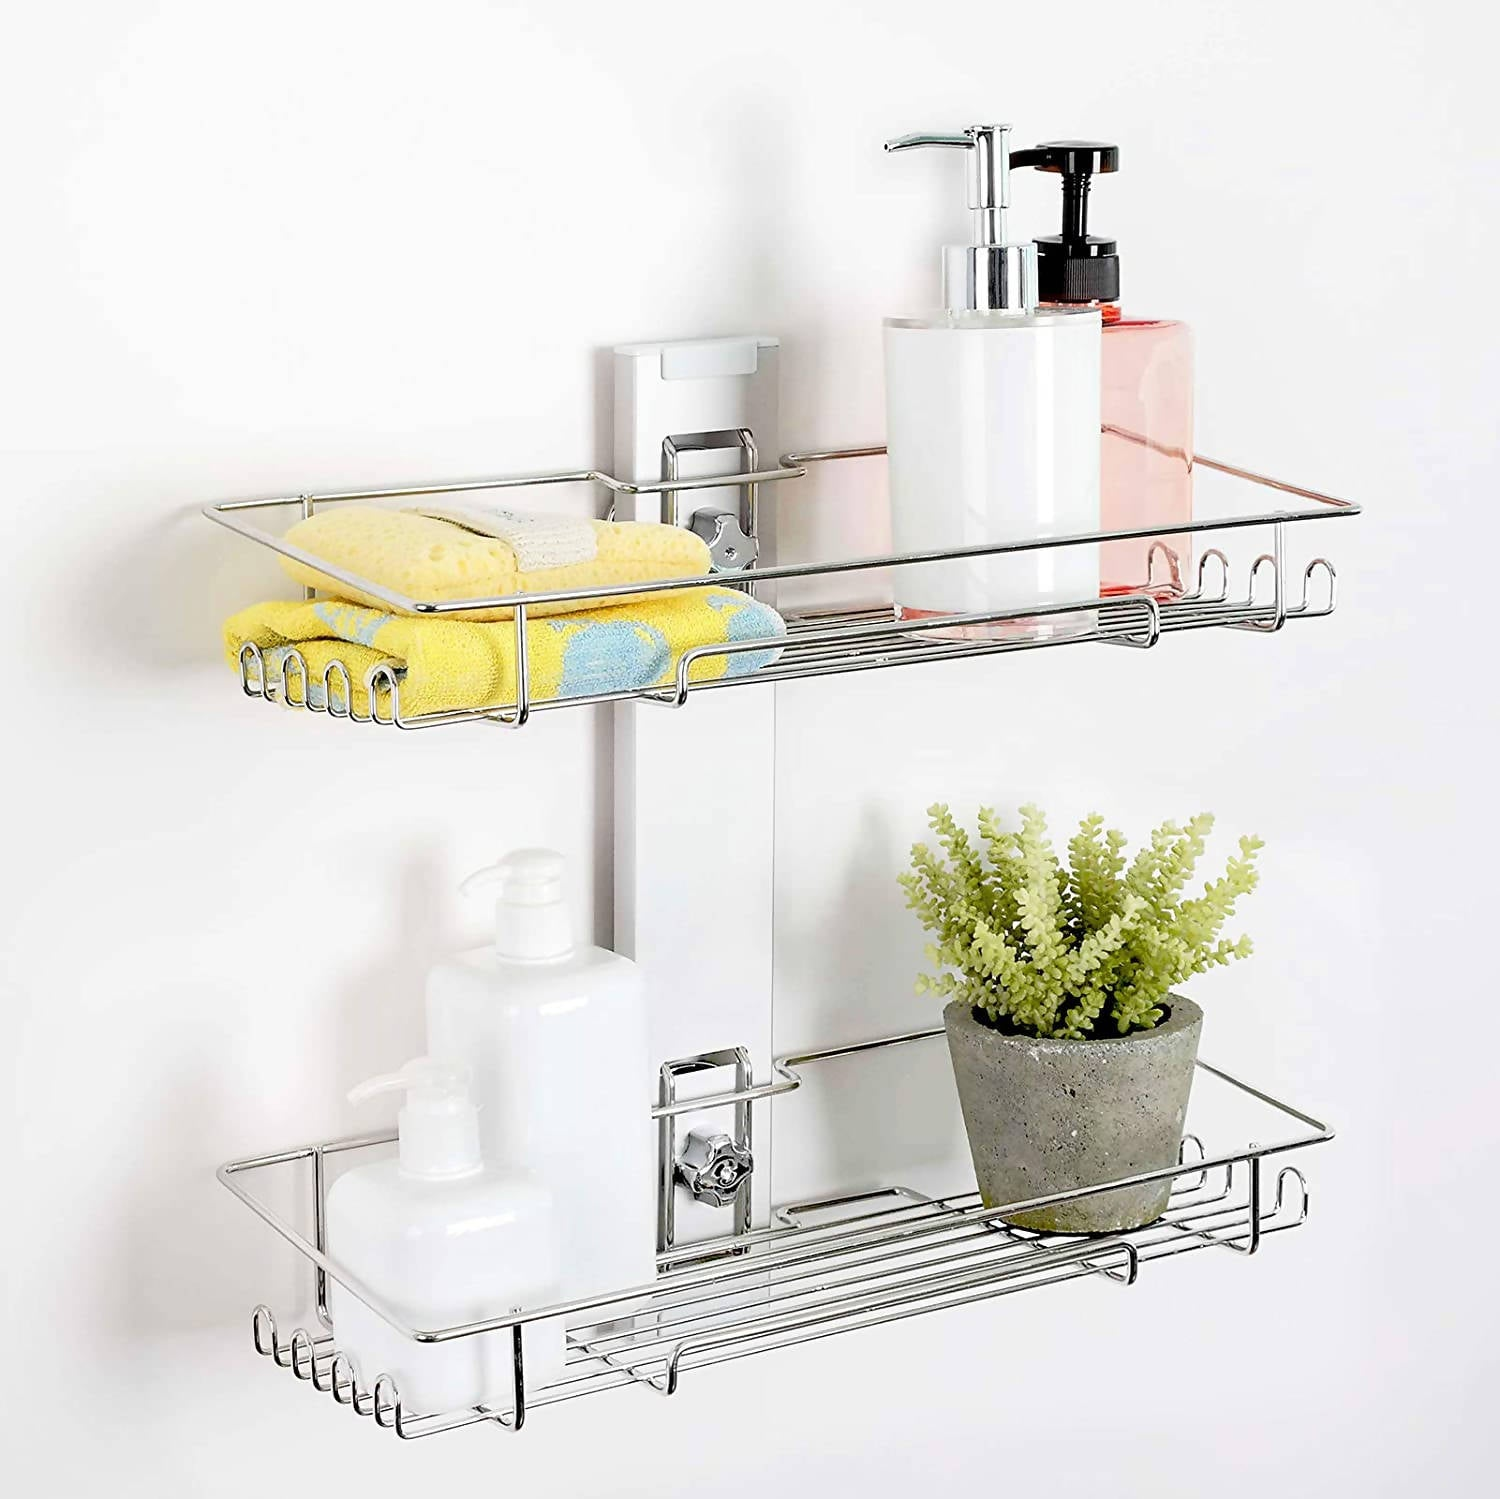 SHOWER CADDY SUCTION CUP 2TIER SHOWER SHELF